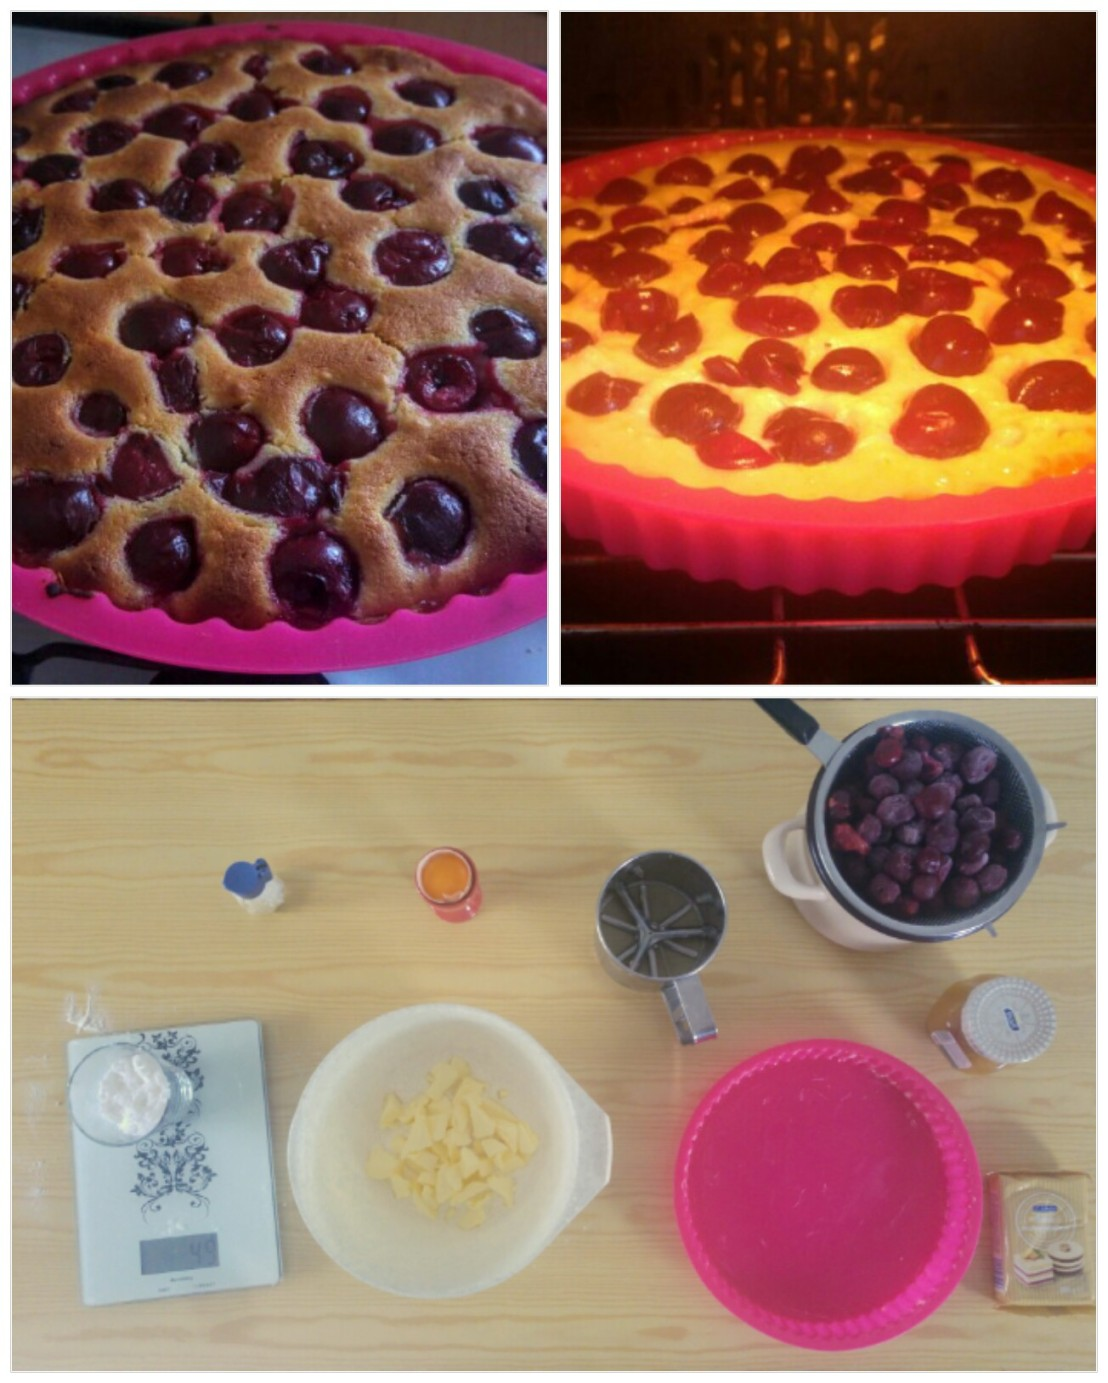 Collage - ingredients, marzipan cherry tart in the oven and baked